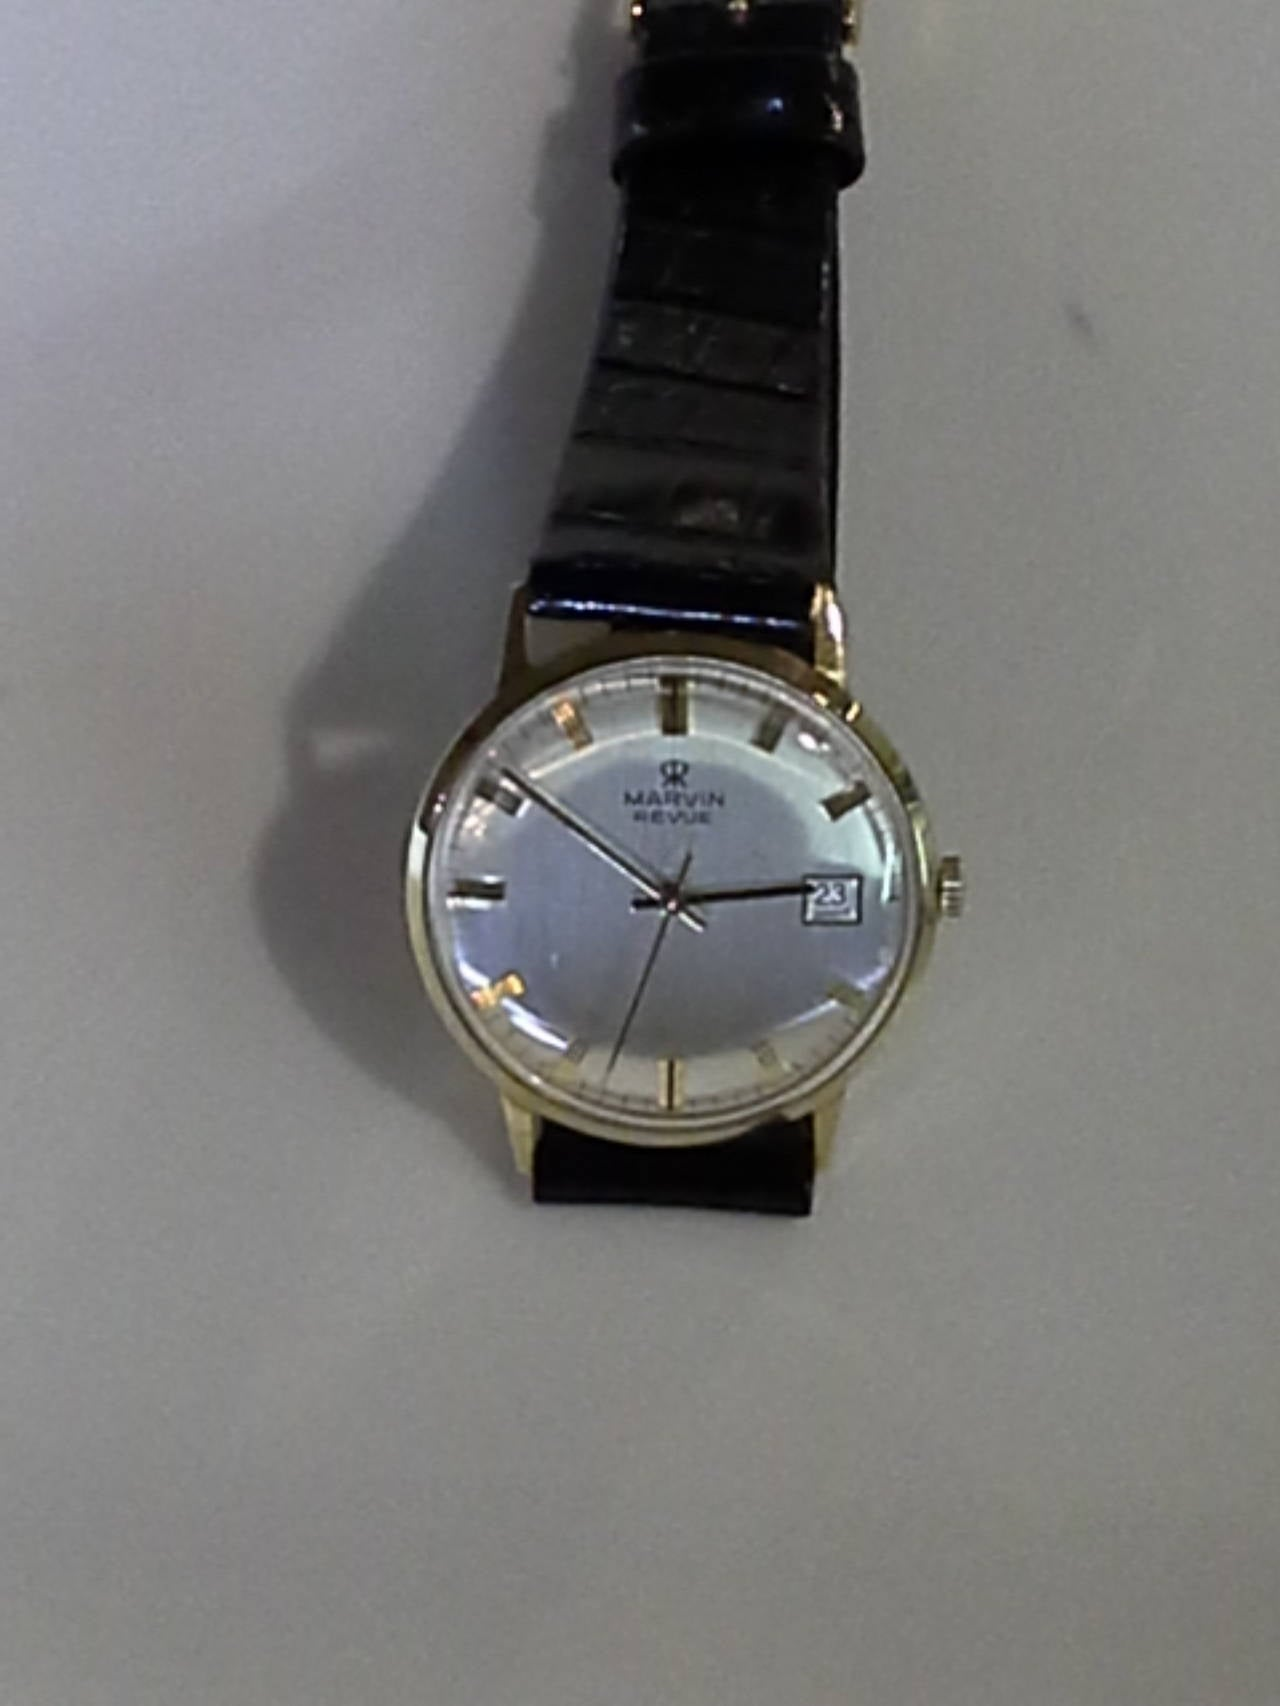 Marvin Revue Day or Date Gold Wristwatch with Original Bracelet in Original Box 3